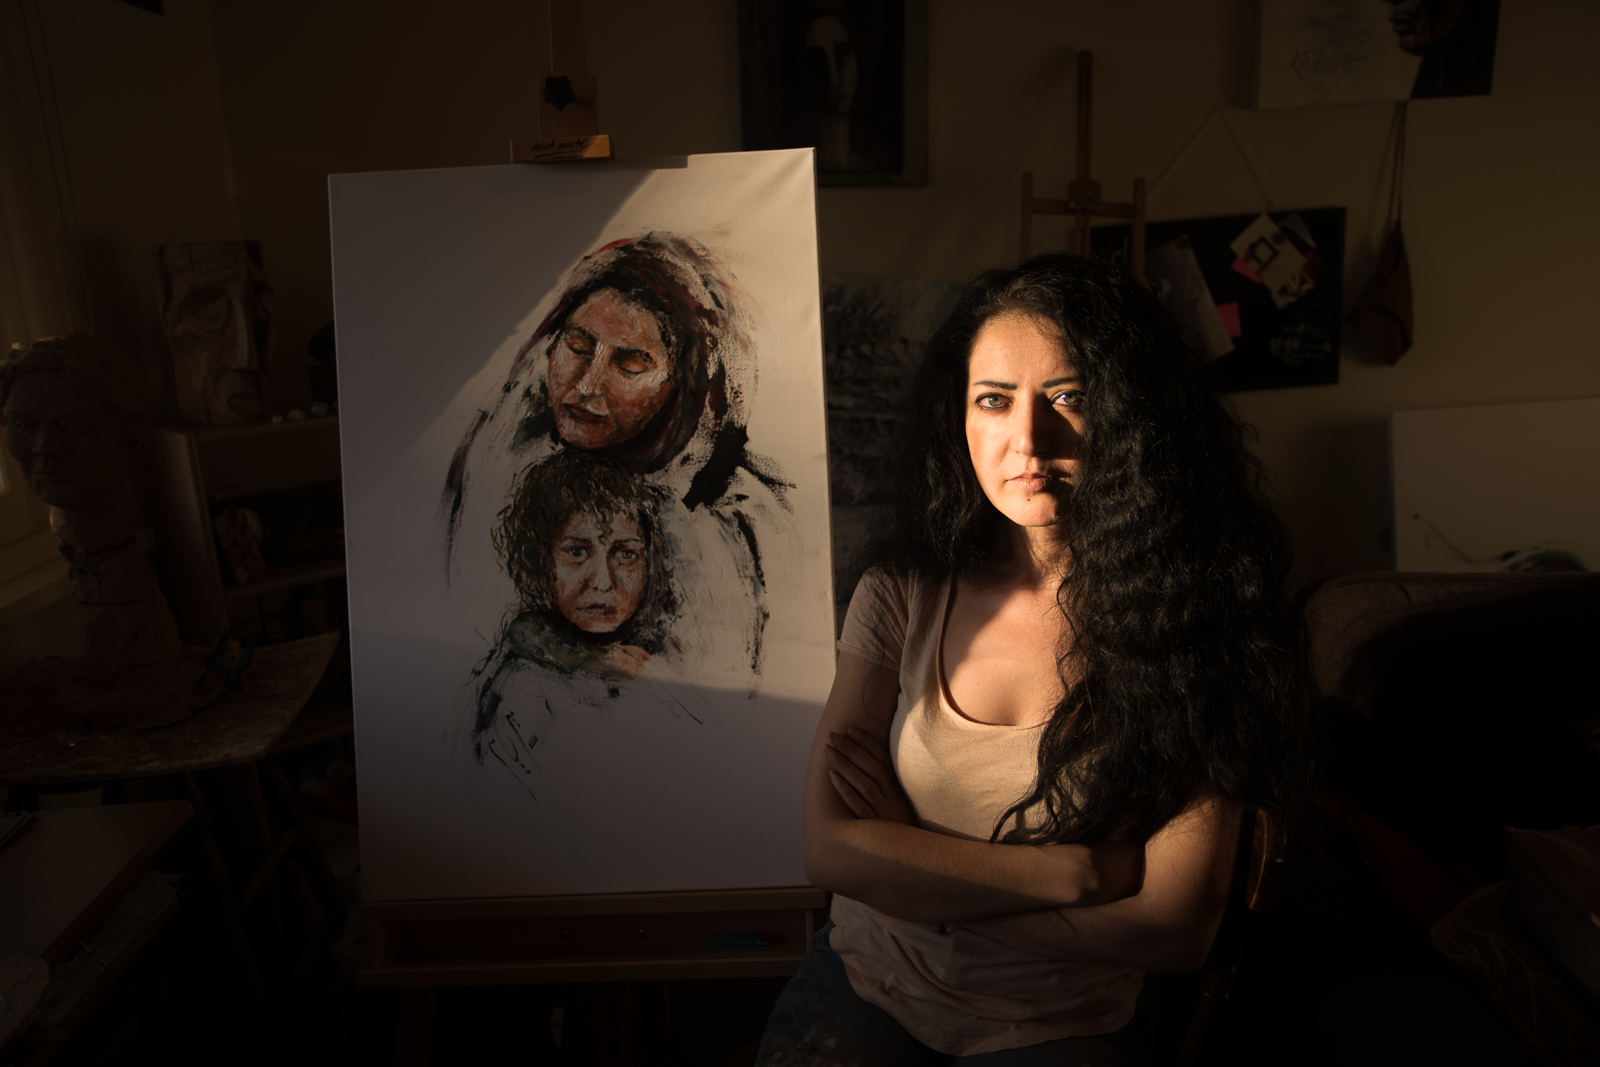 PAINTING SYRIA - VIDEO PORTRAIT OF AN SYRIAN ARTIST